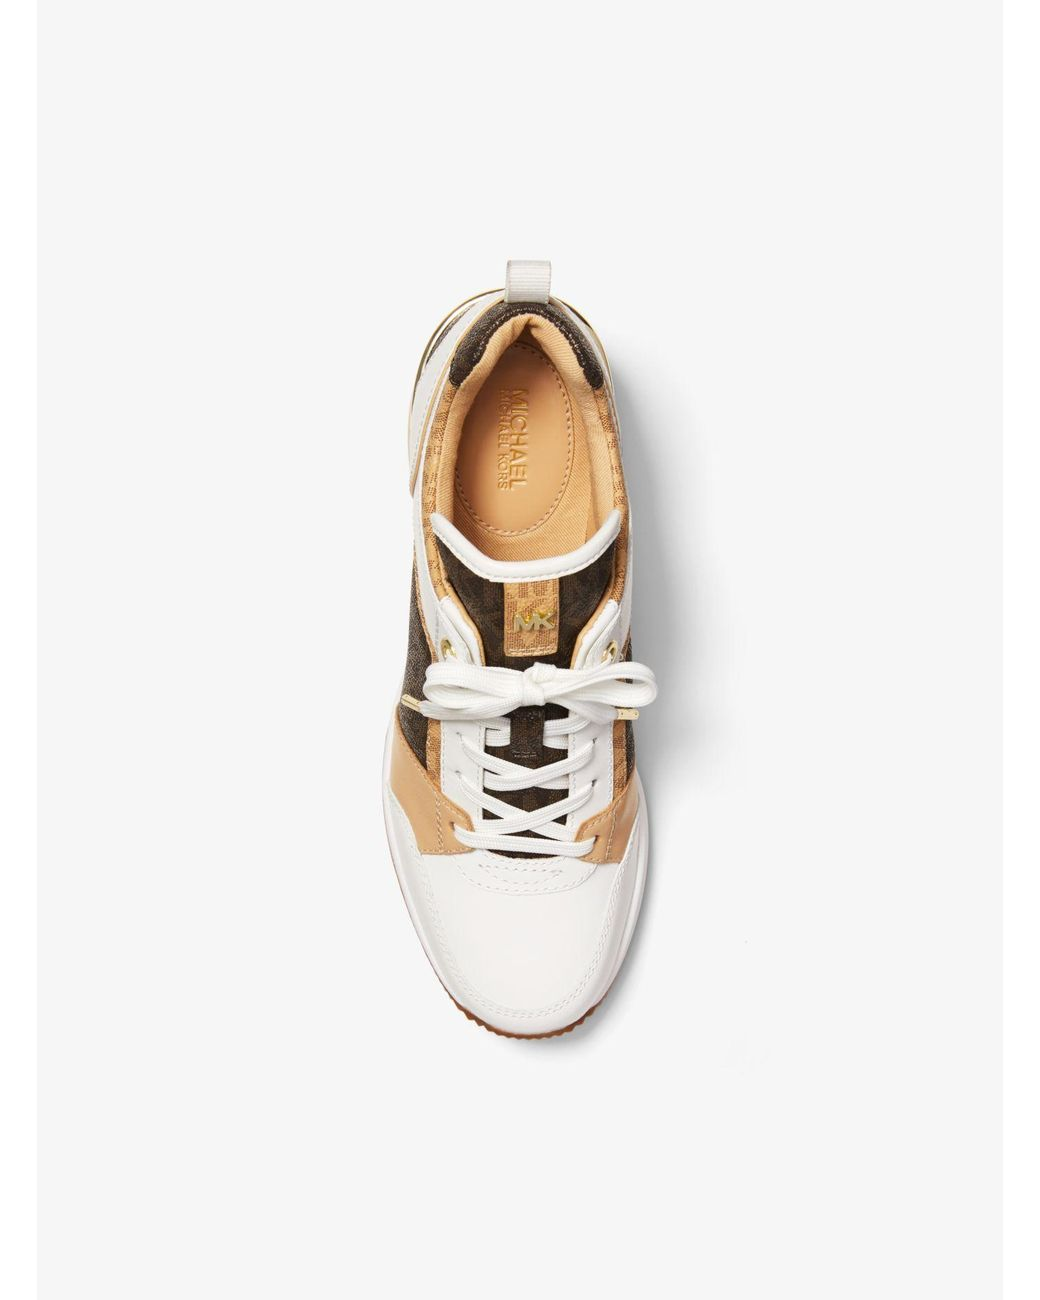 georgie logo and leather trainer